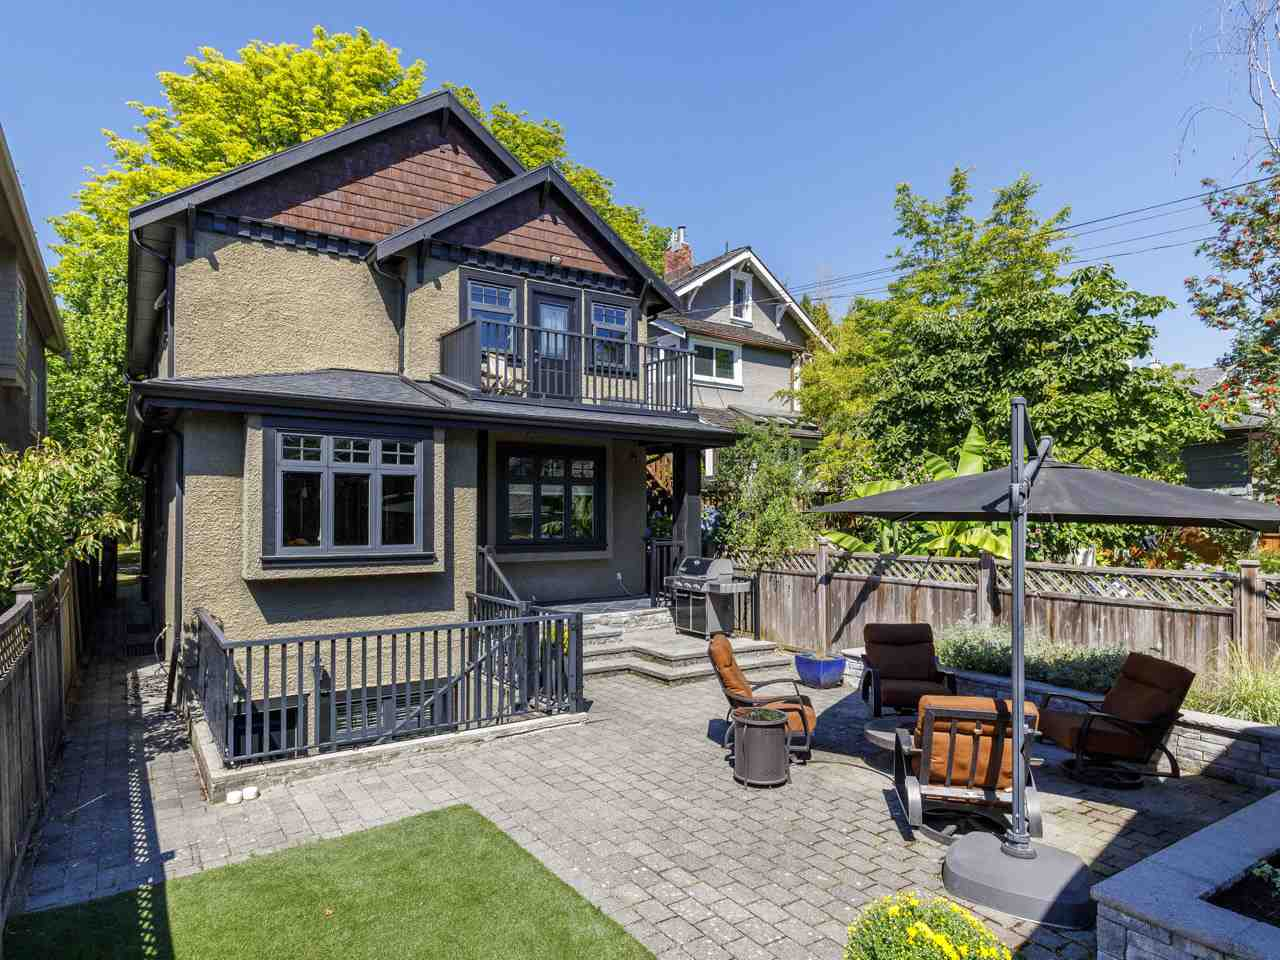 3040 W 12 AVENUE - Kitsilano House/Single Family for sale, 5 Bedrooms (R2482160) - #39